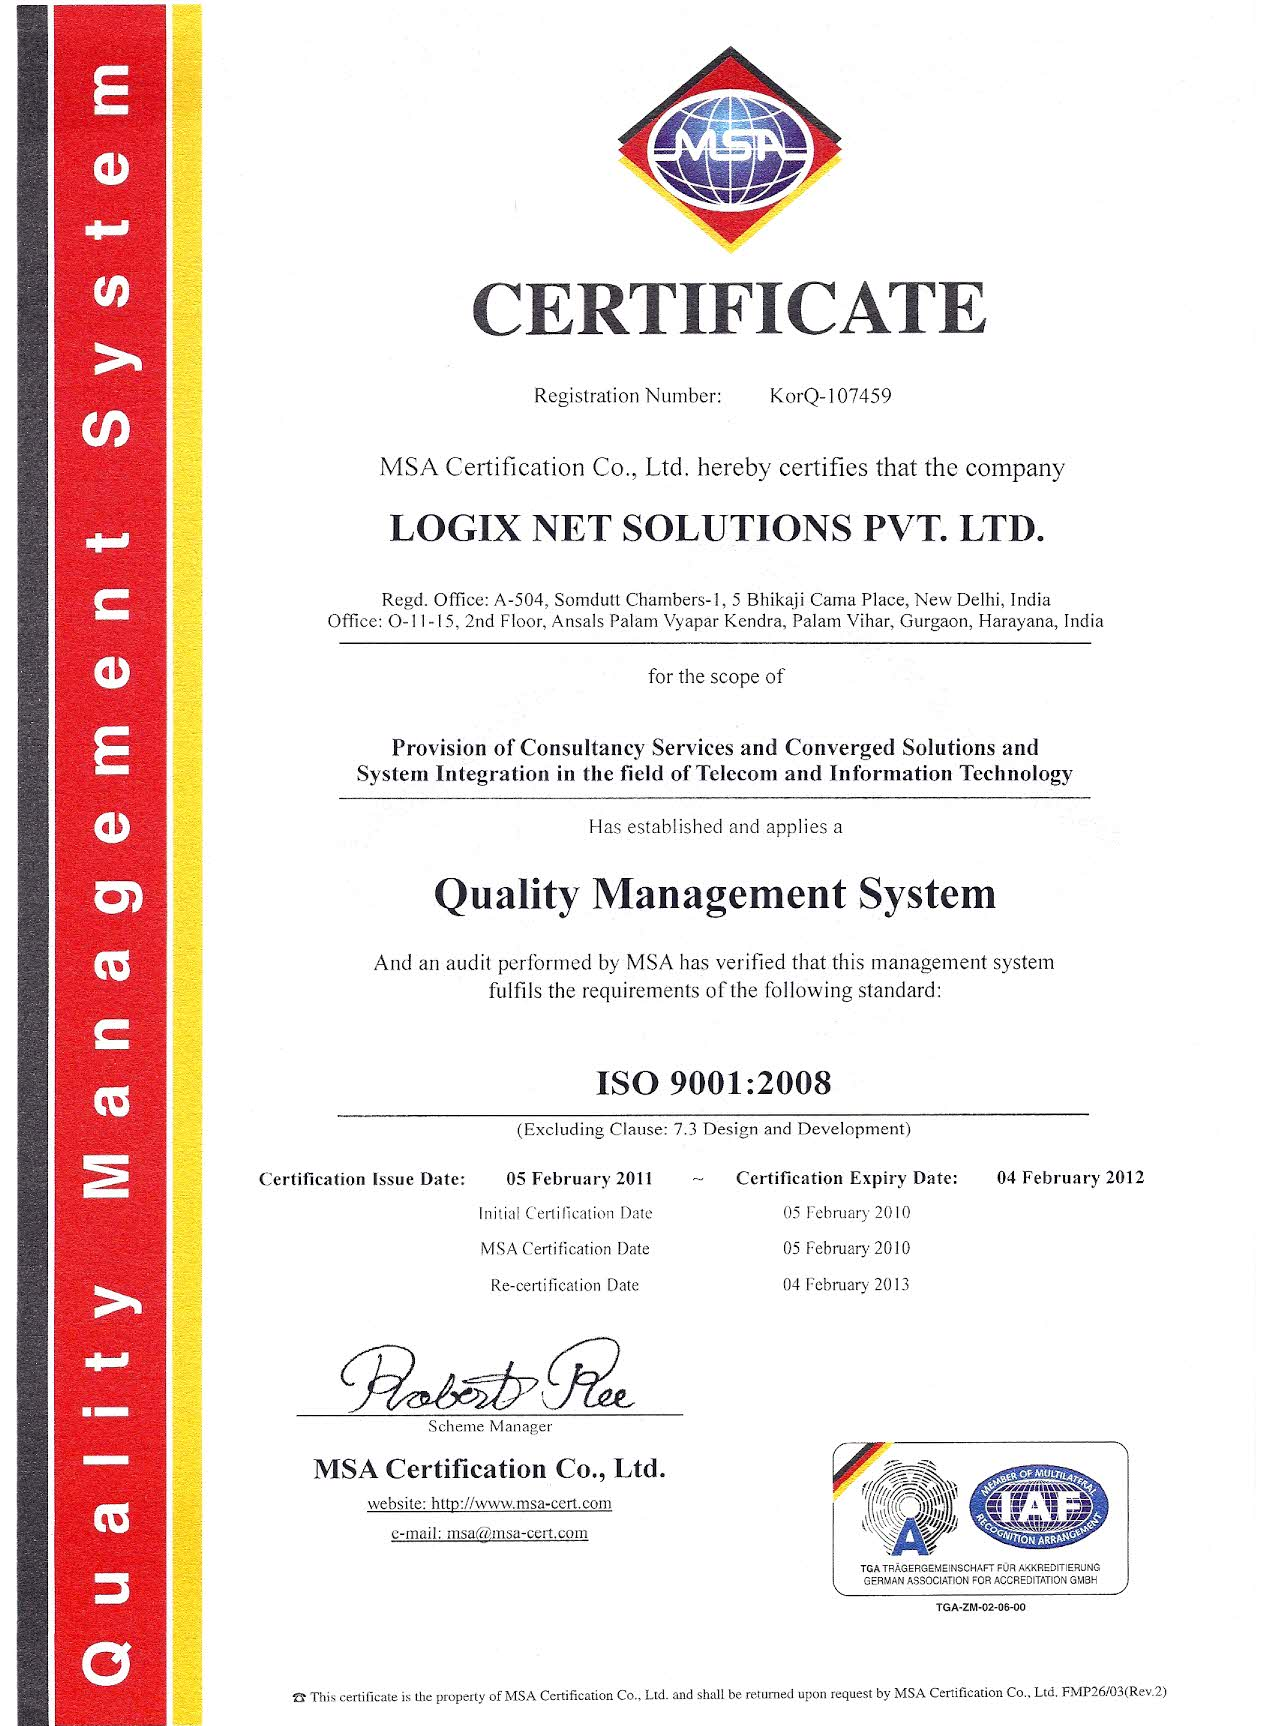 Logix net solution business network nationwide business networking iso certificate xflitez Choice Image